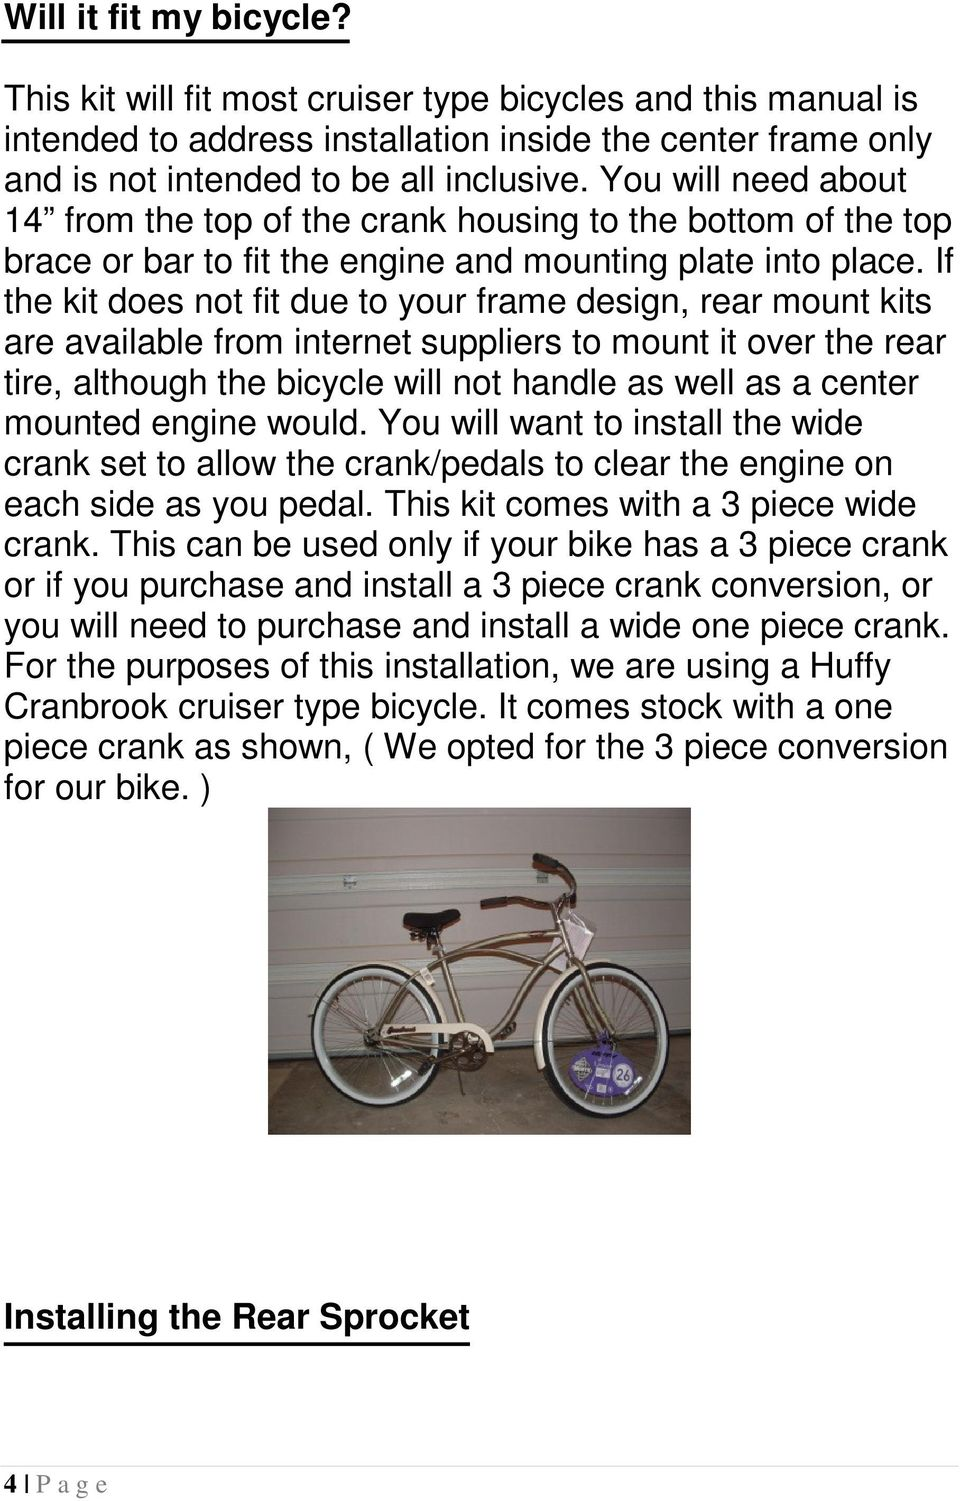 49cc 4 STROKE MOTORIZED BICYCLE INSTALLATION MANUAL - PDF